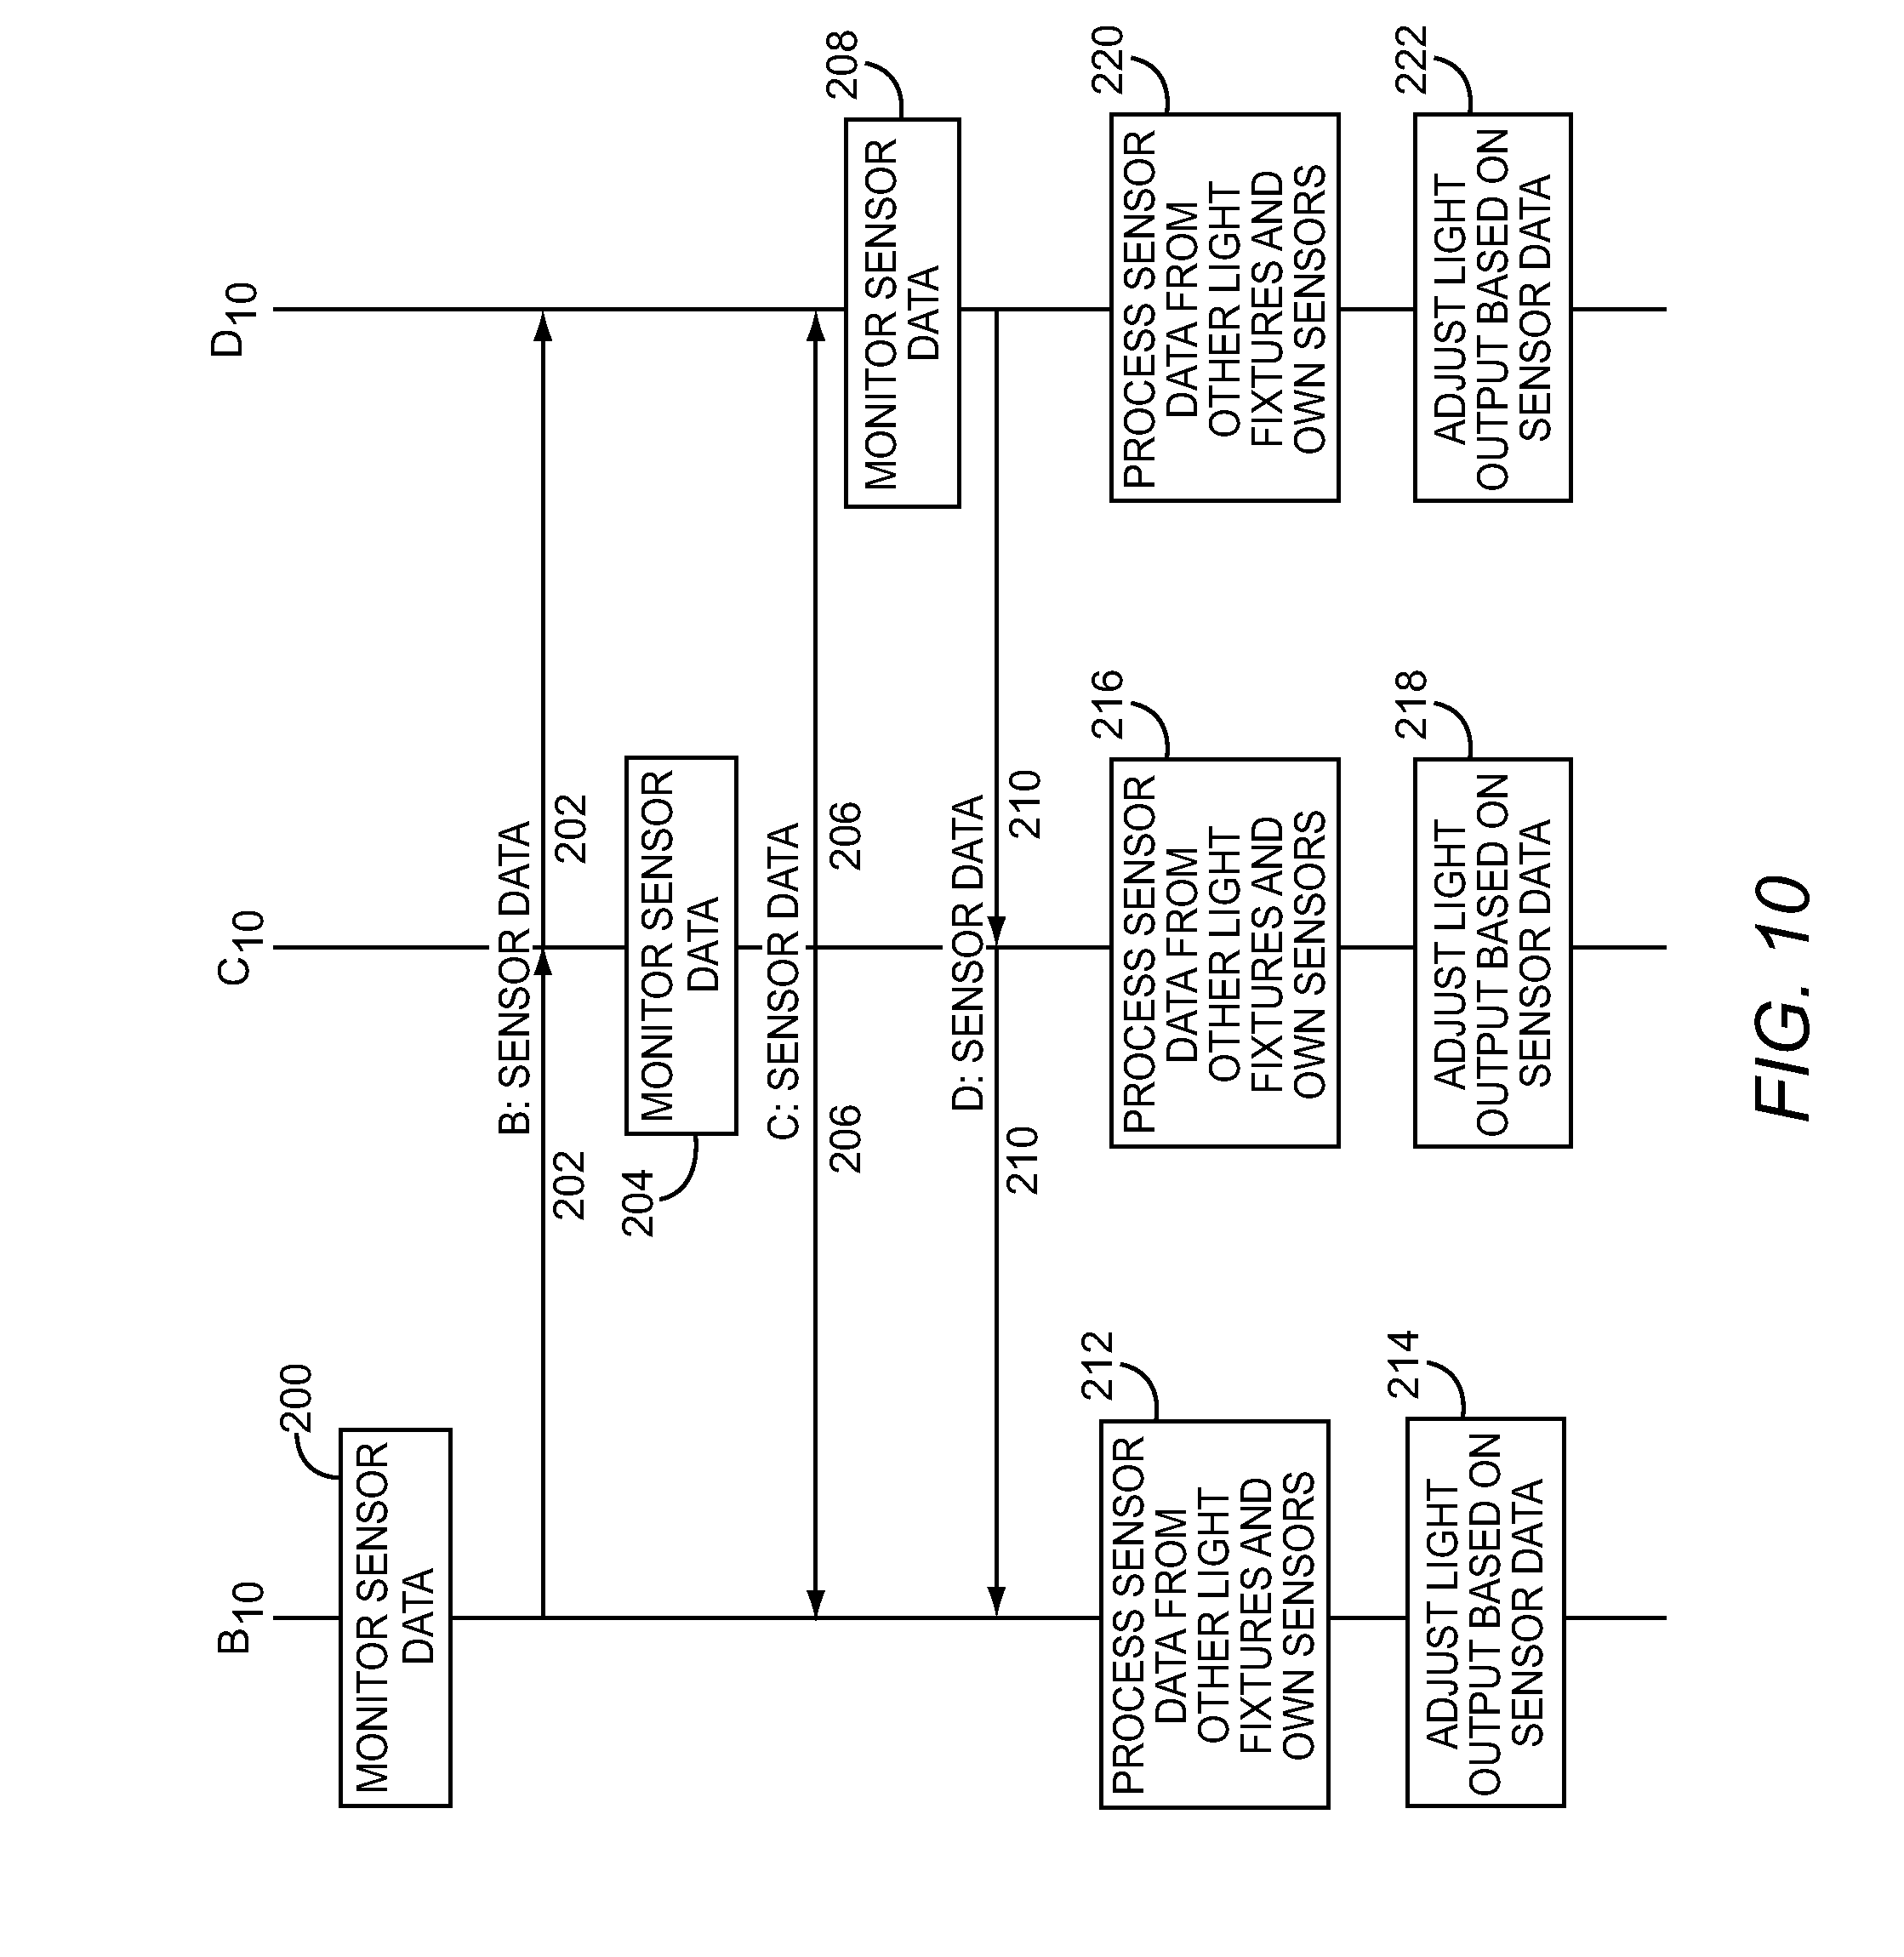 Patent Us 8829821 B2 Related Circuits Linear Dimming Control Circuit Voice Activated Images